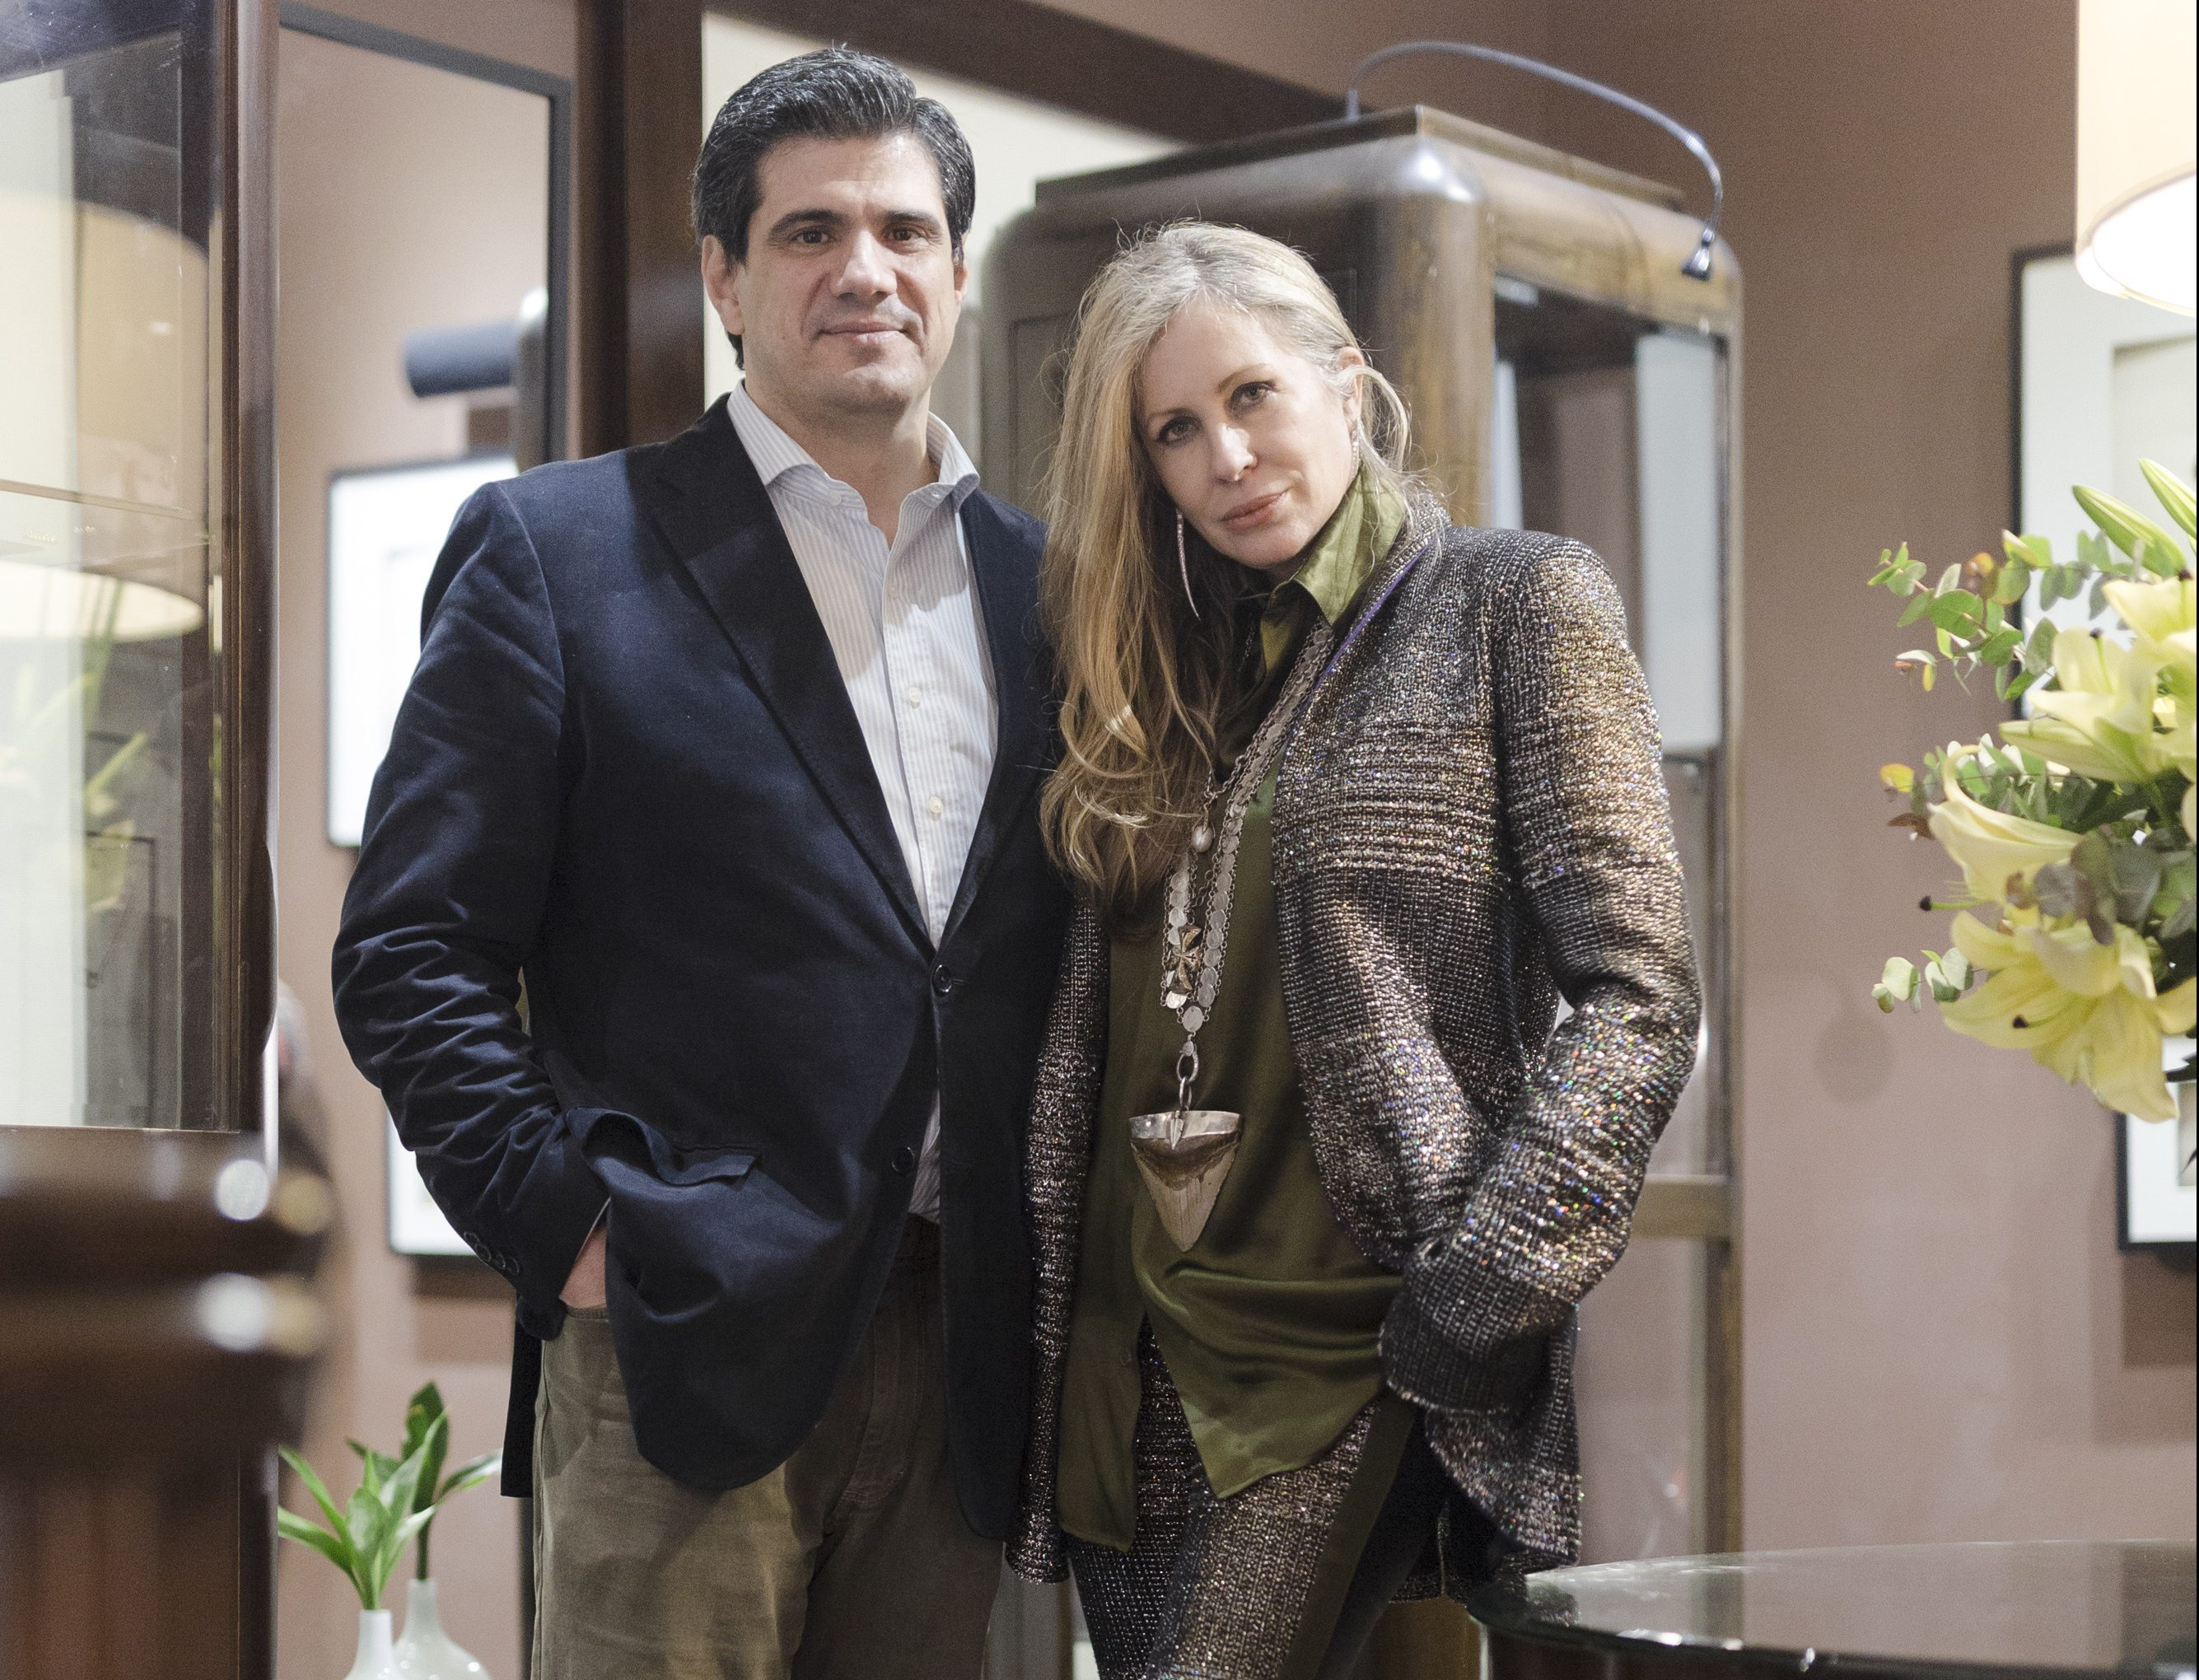 Ricardo Ferrer teamed up with Carmen Busquets to found the business.